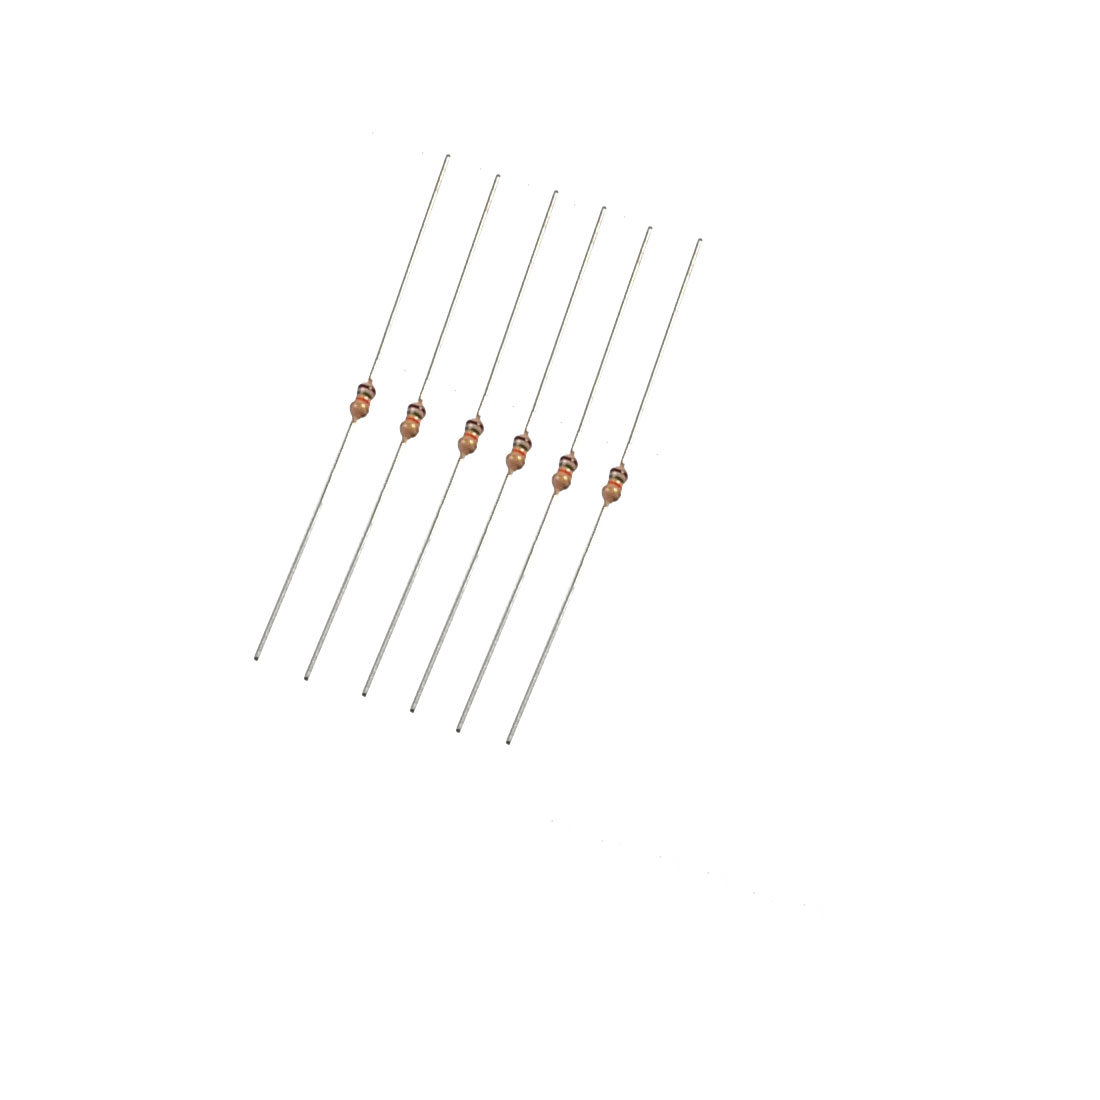 1/8W Watt 75K Ohm 5% Axial Carbon Film Resistor 1000 Pcs